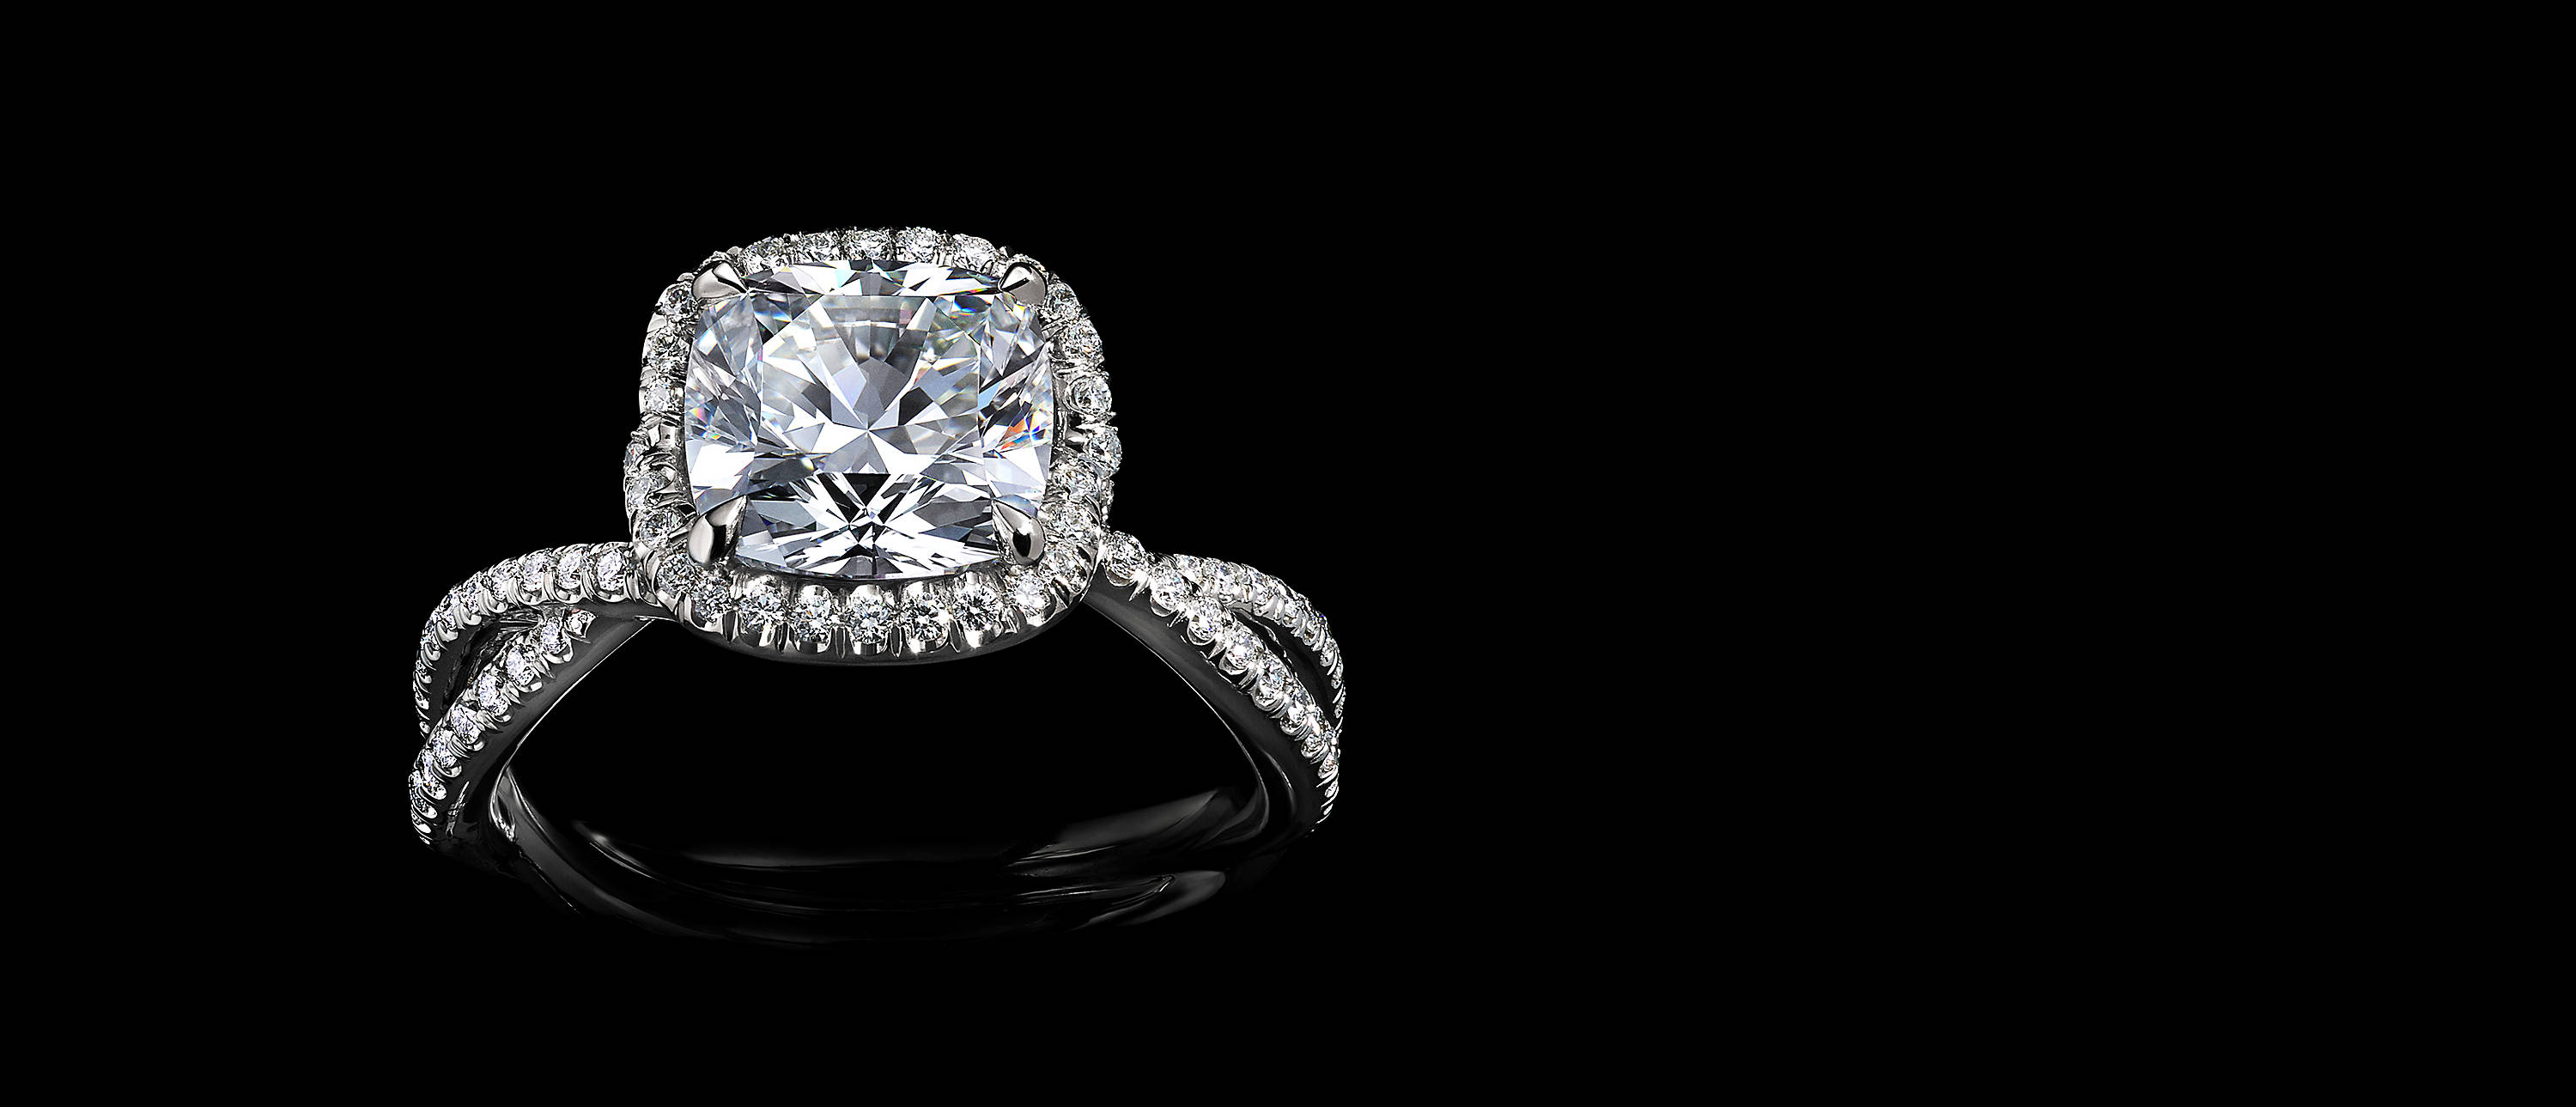 Shot against black, a DY Lanai engagement ring in platinum with a DY Signature Cut center stone, a halo of pavé diamonds and a twisted shank covered with pavé diamonds.